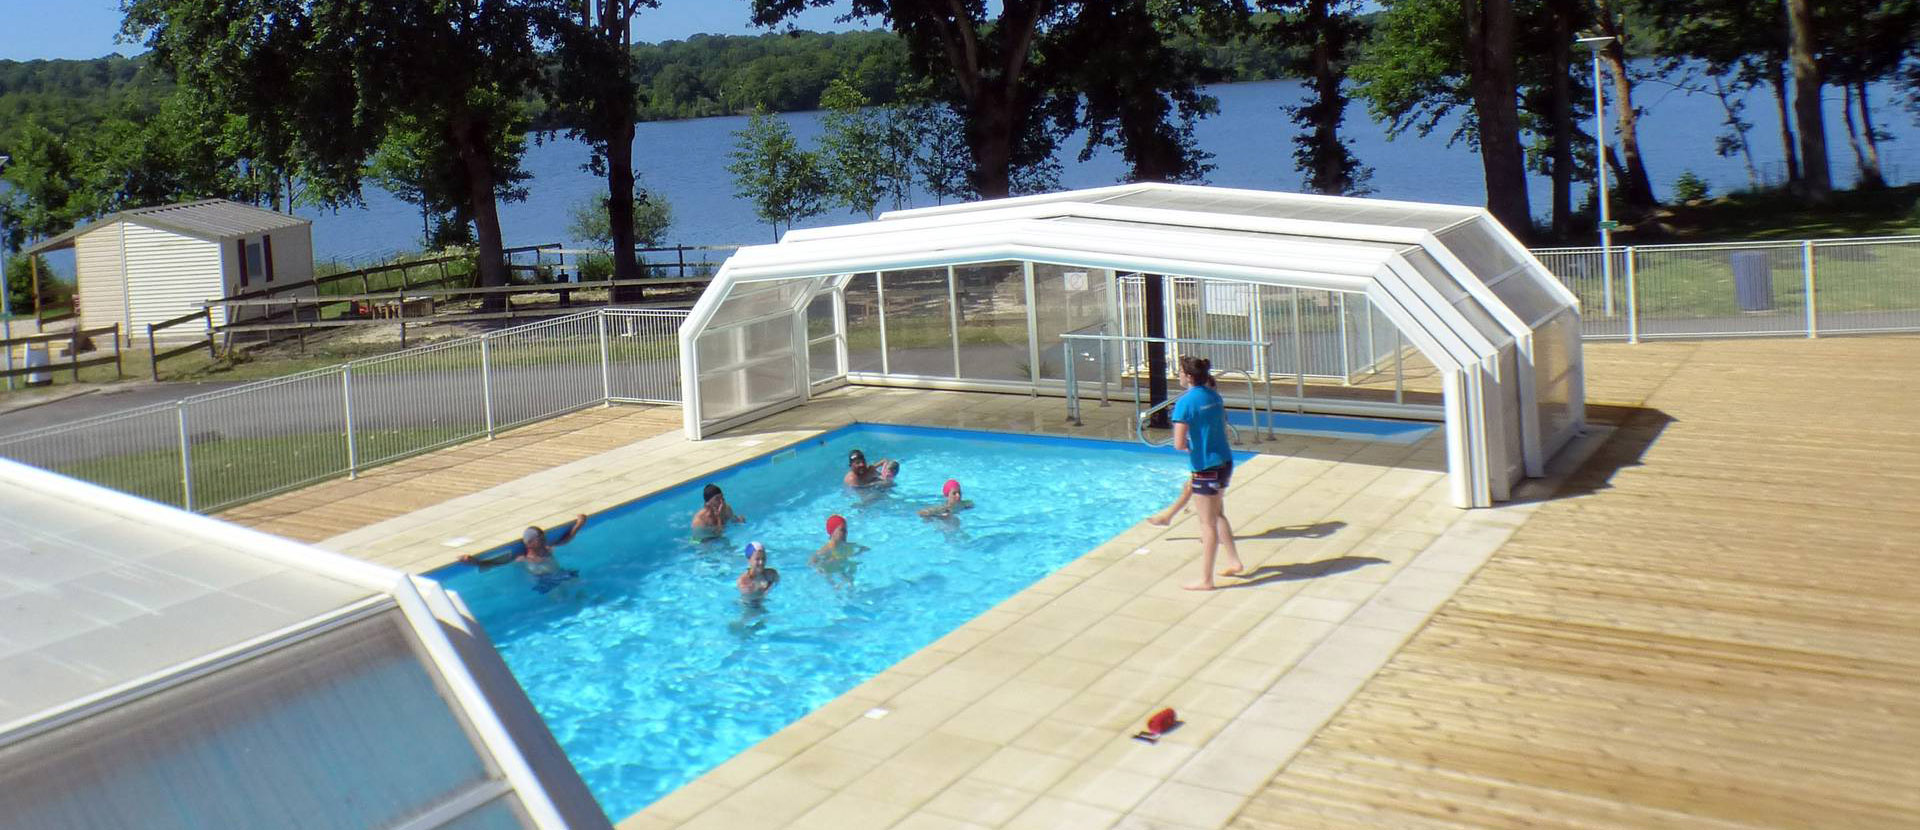 Campsite in Brittany with indoor swimming pool